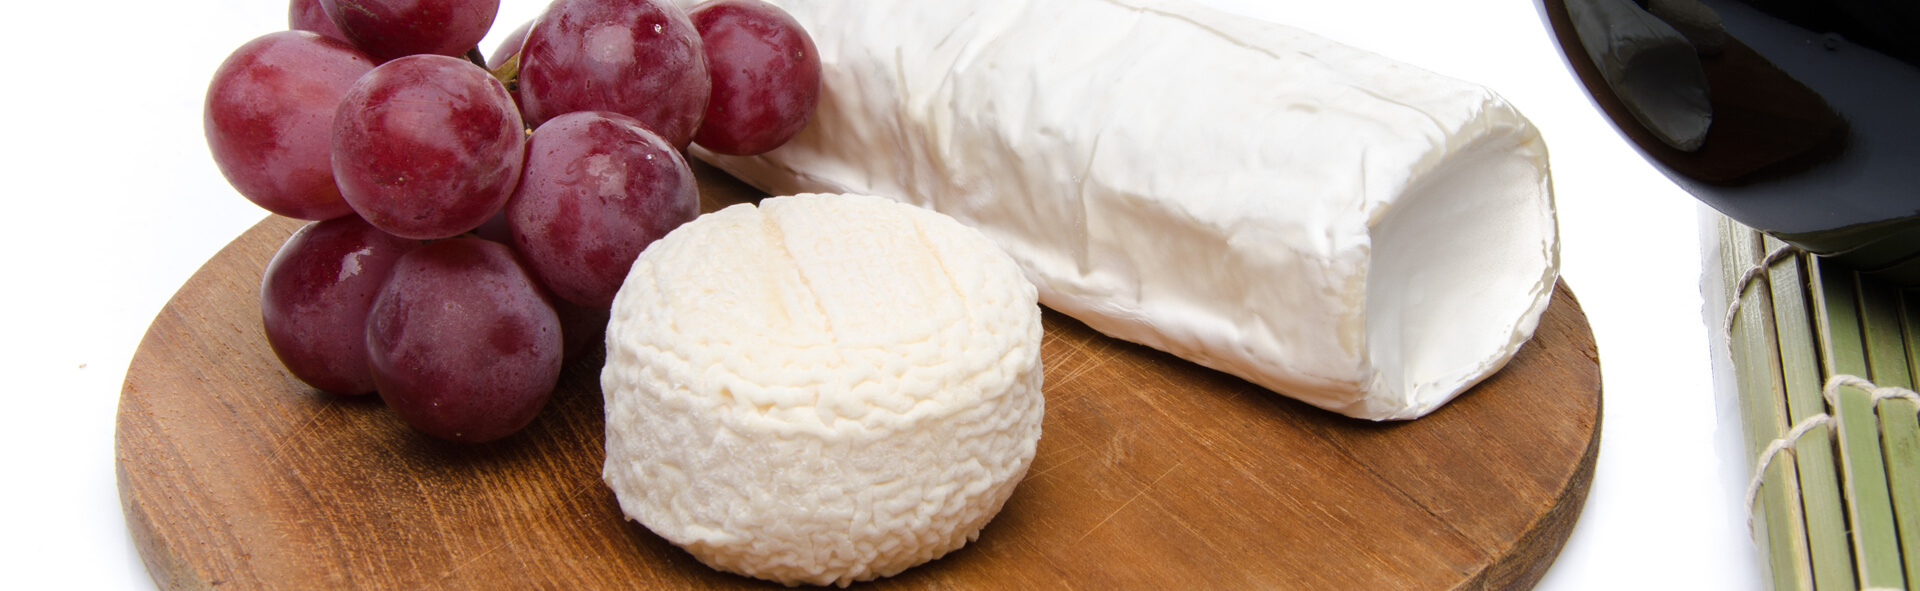 Photo of Holy Goat cheese and grapes on a wooden cutting board.